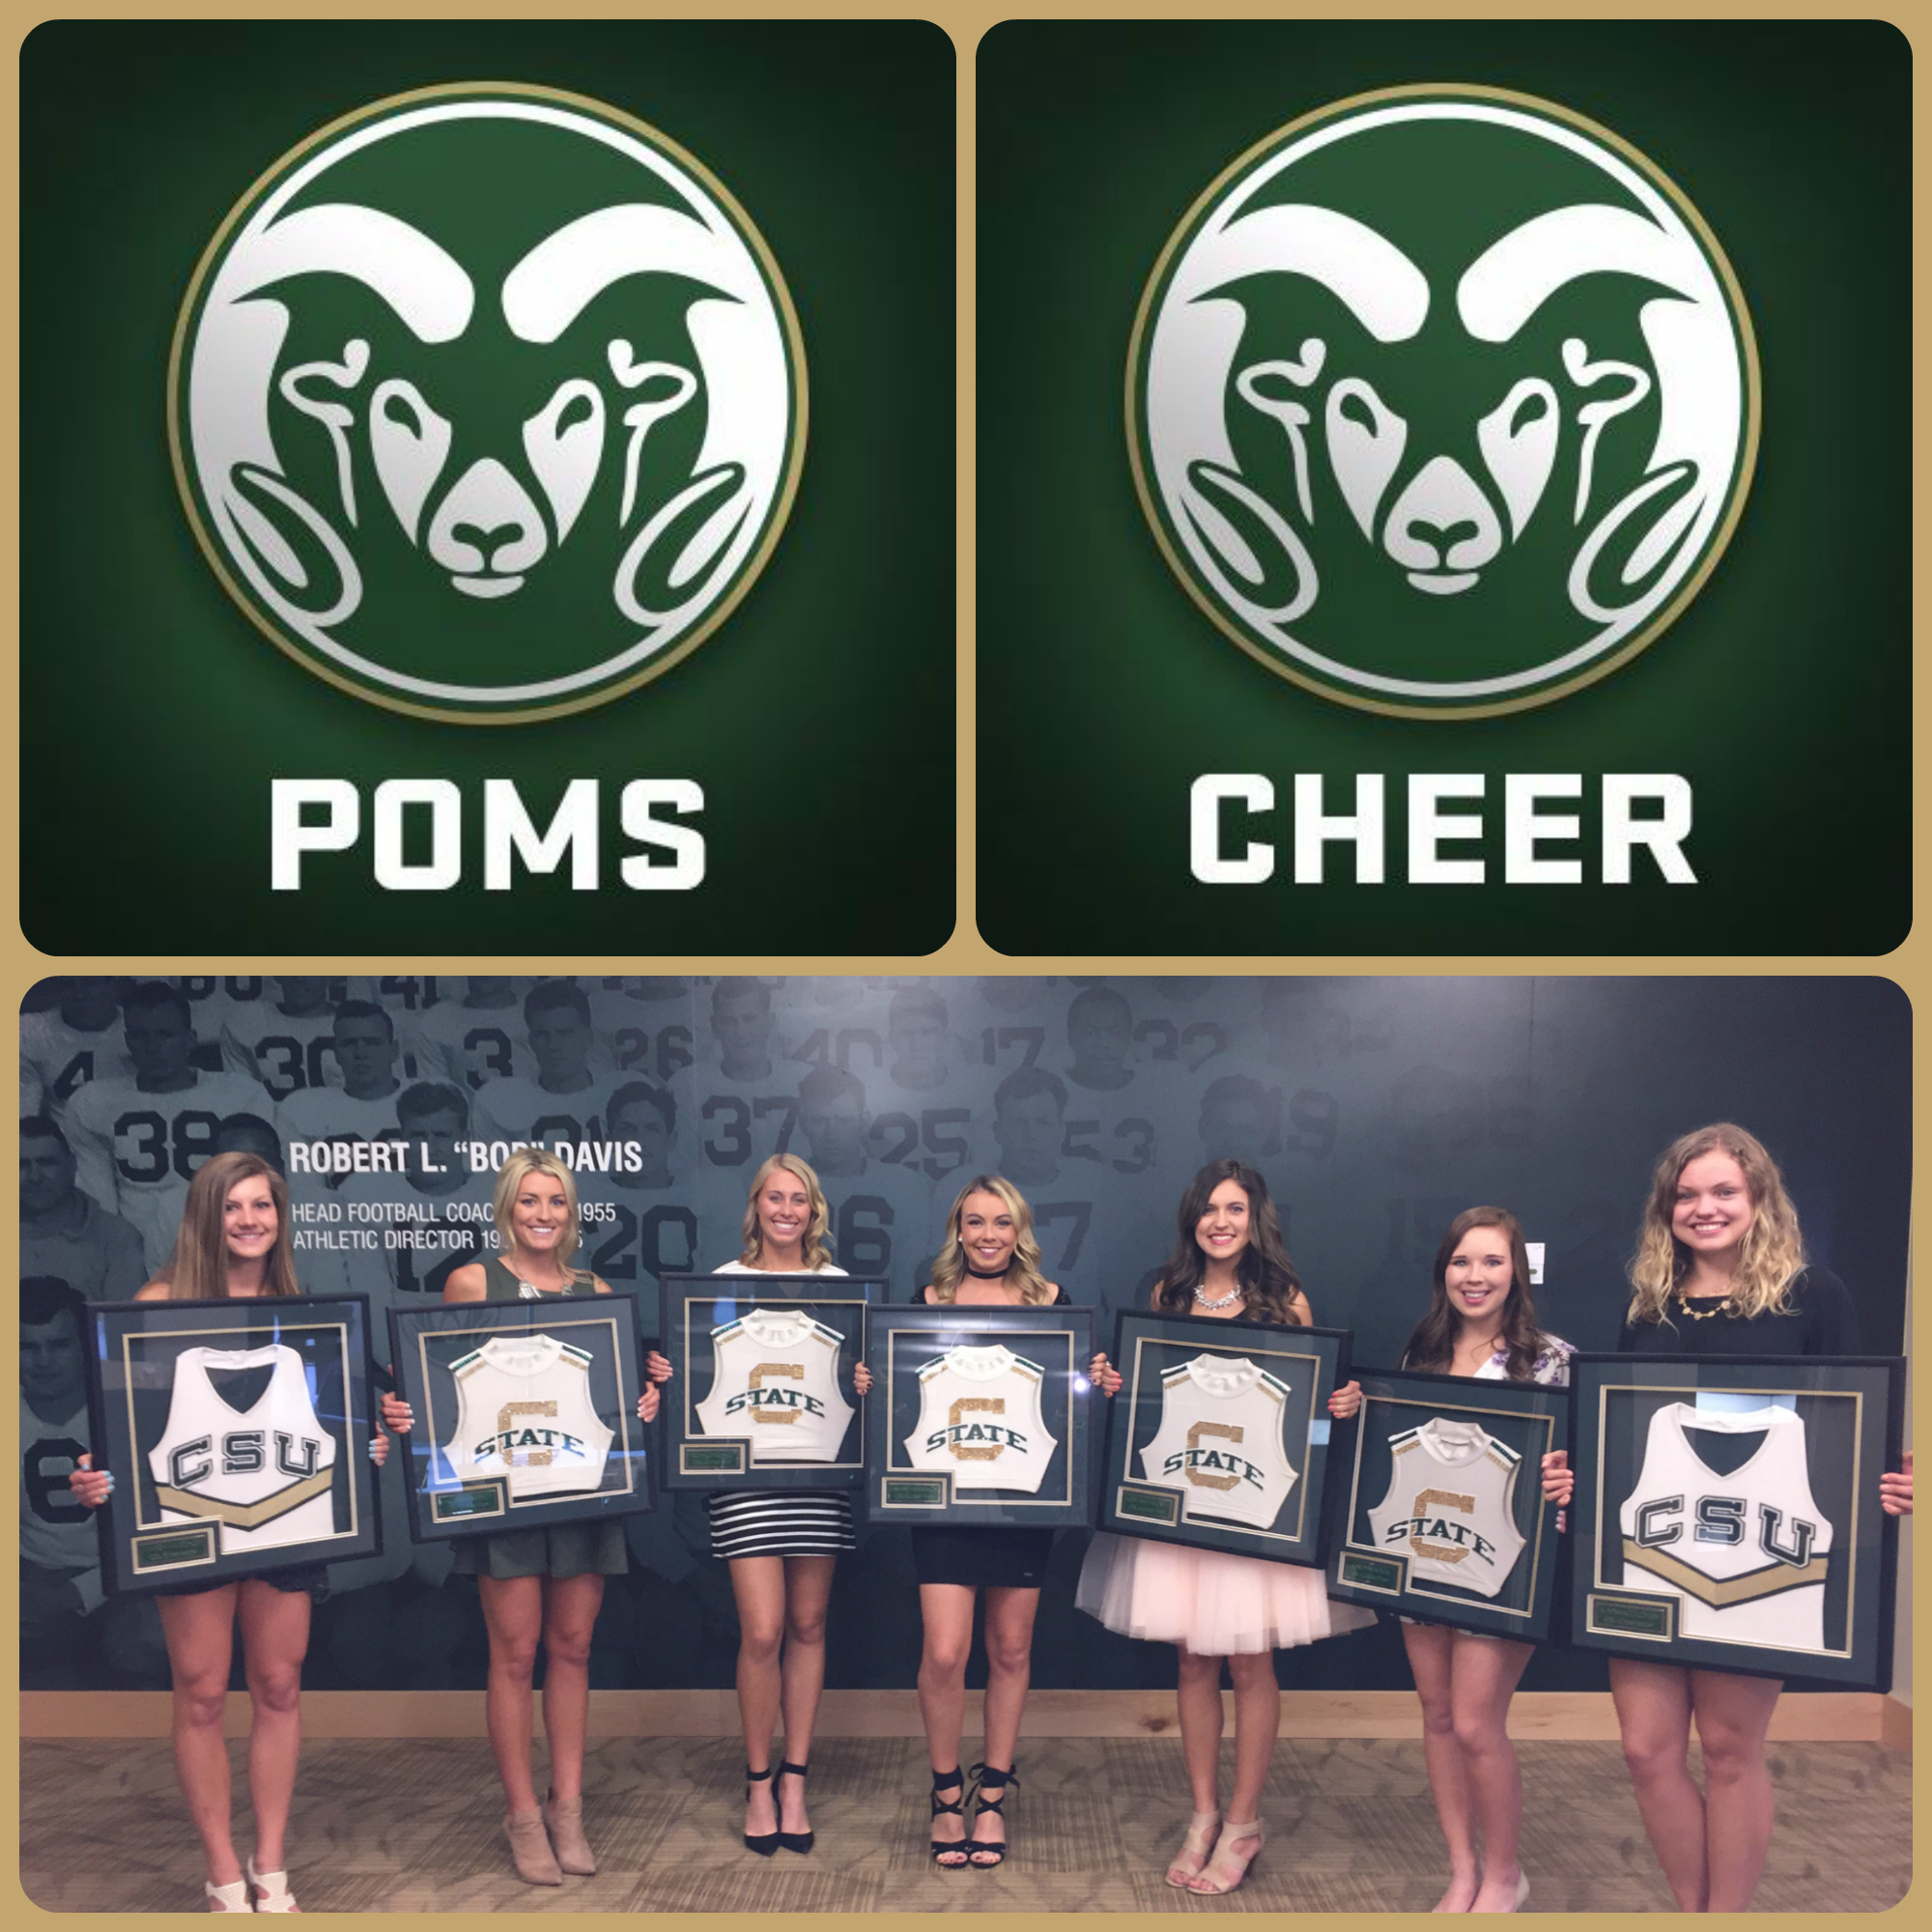 Honored to frame again this year's senior's CSU Cheerleading & Poms